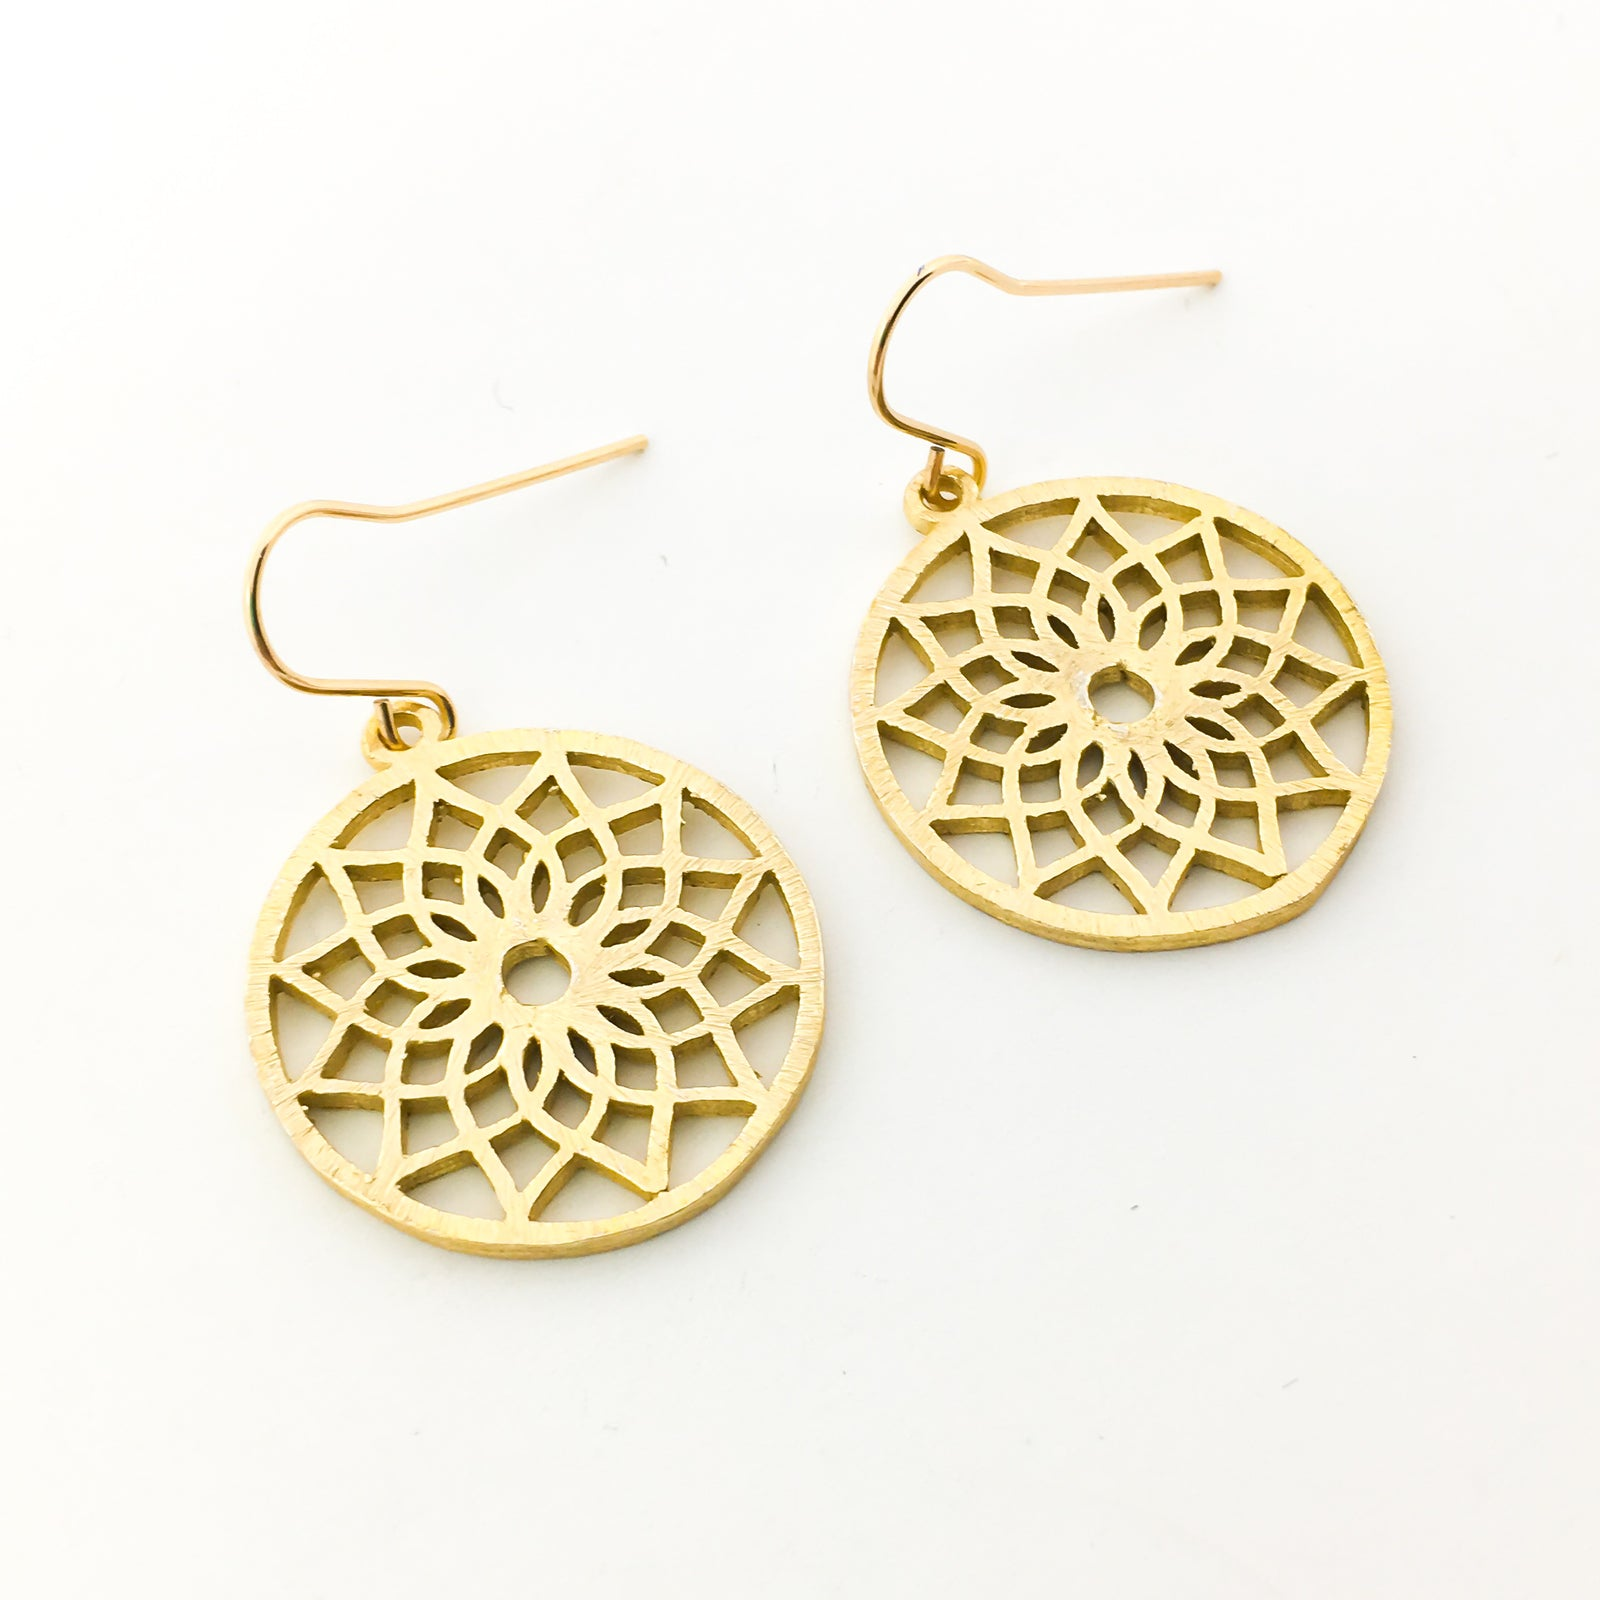 BRUSHED FLORAL CIRCLE EARRINGS | 14K GOLD-FILLED